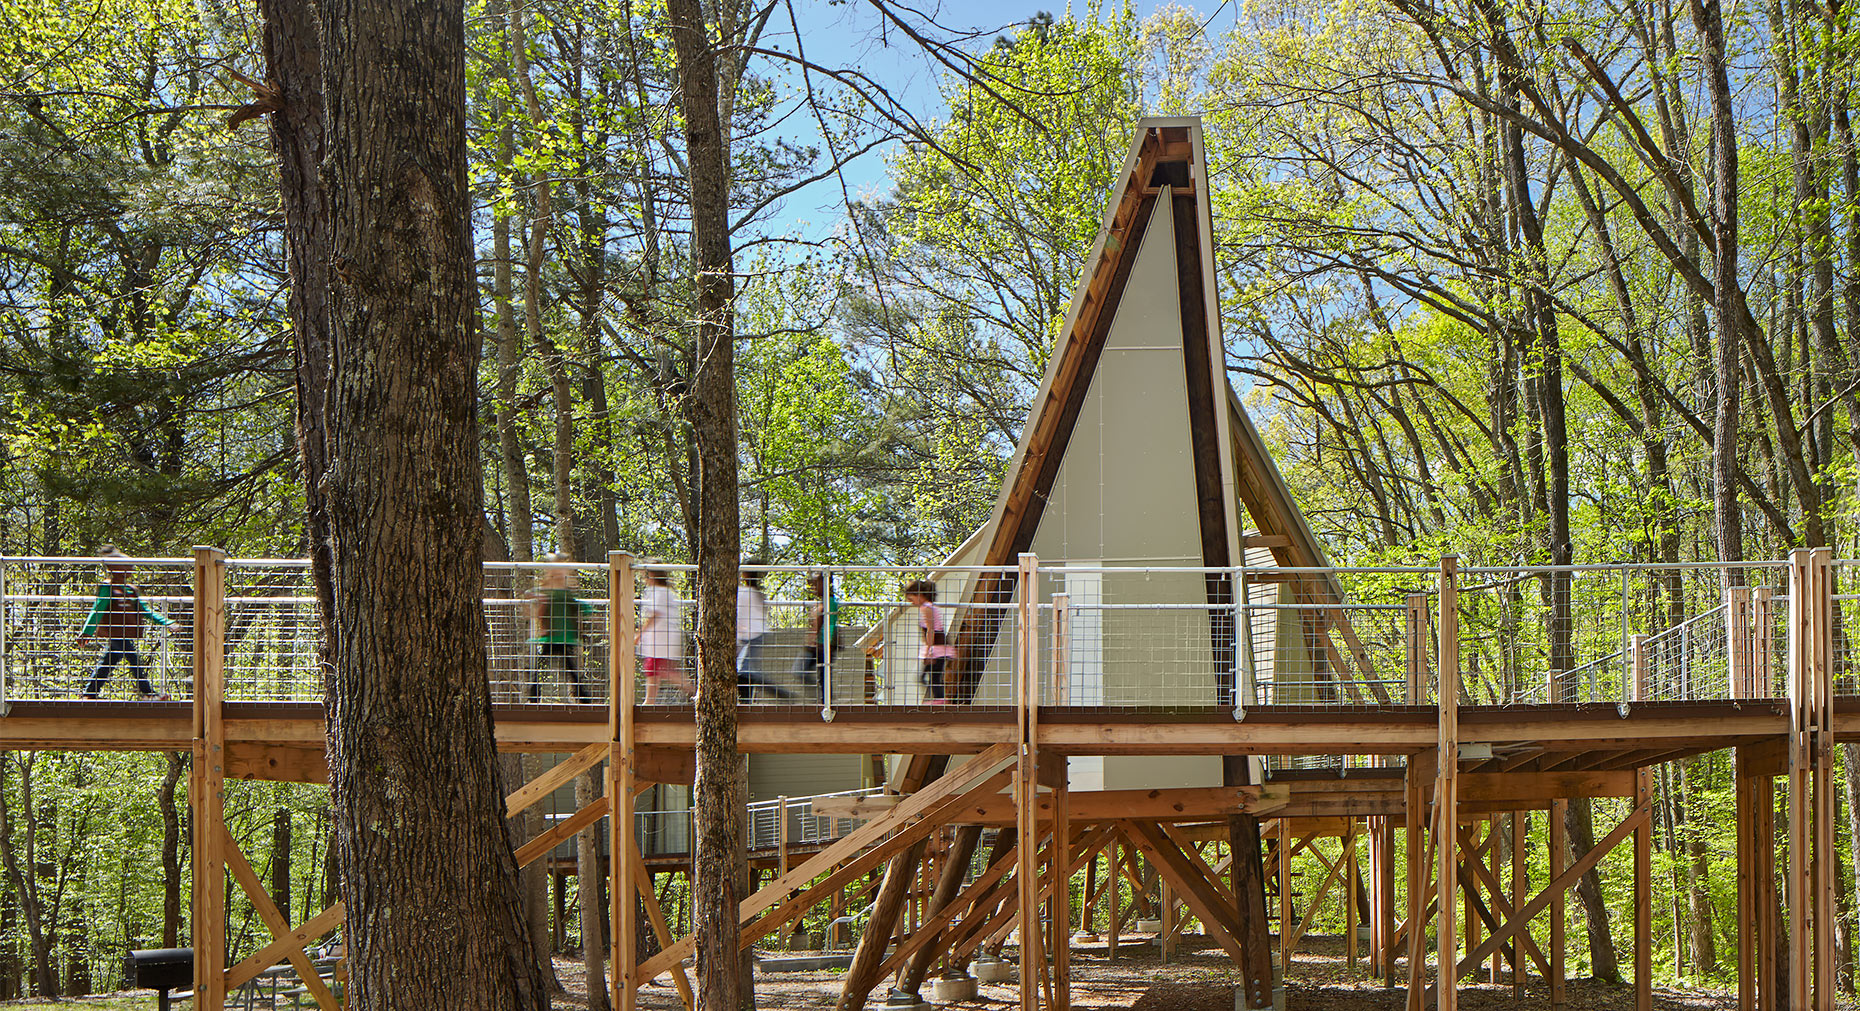 Camp-Graham-Cloverfield-Treehouses-2839e